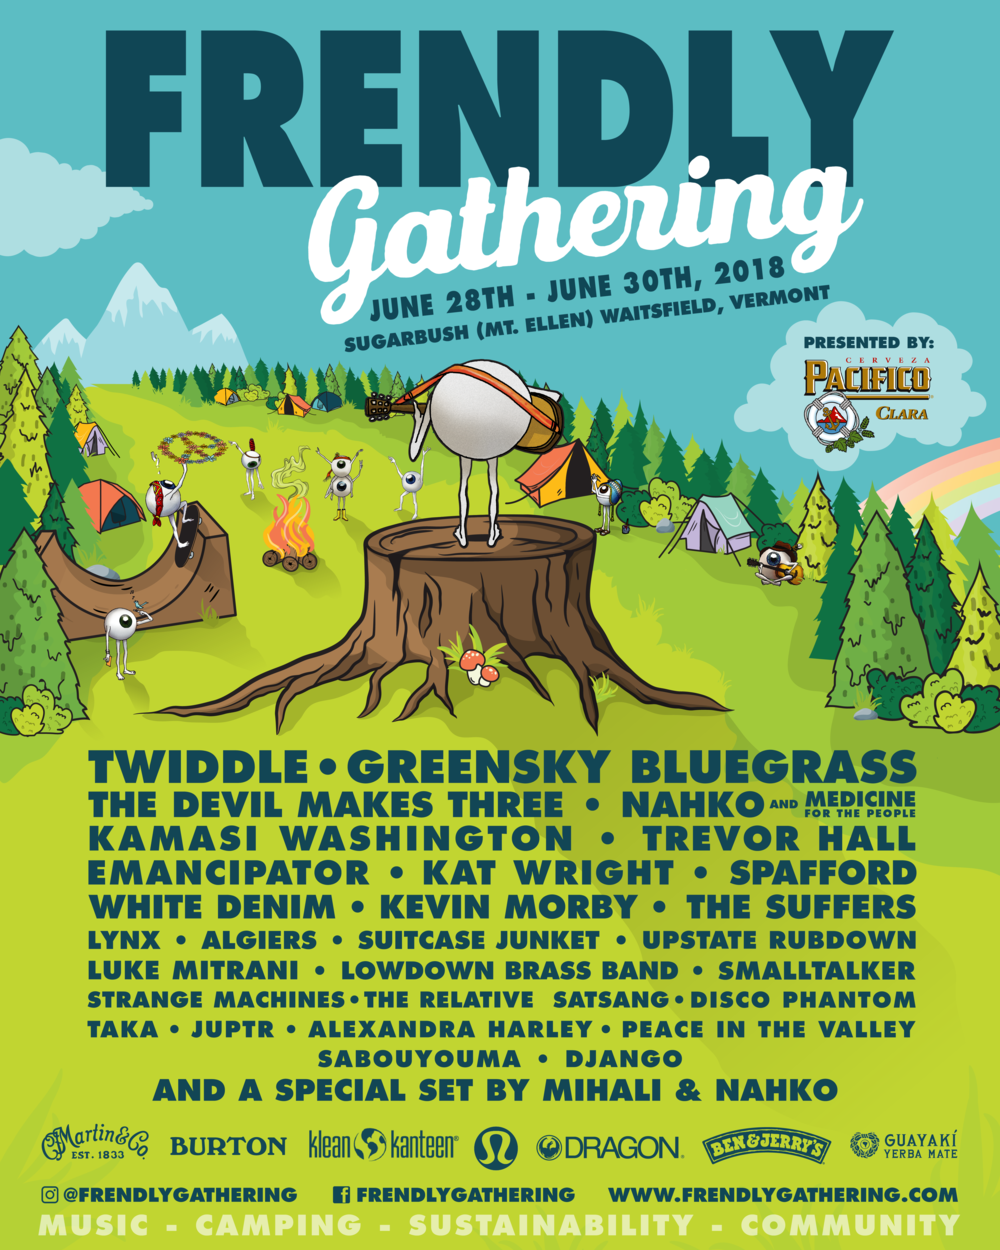 Frendly Gathering_2018_1080x1350 RGB_V2-01.png